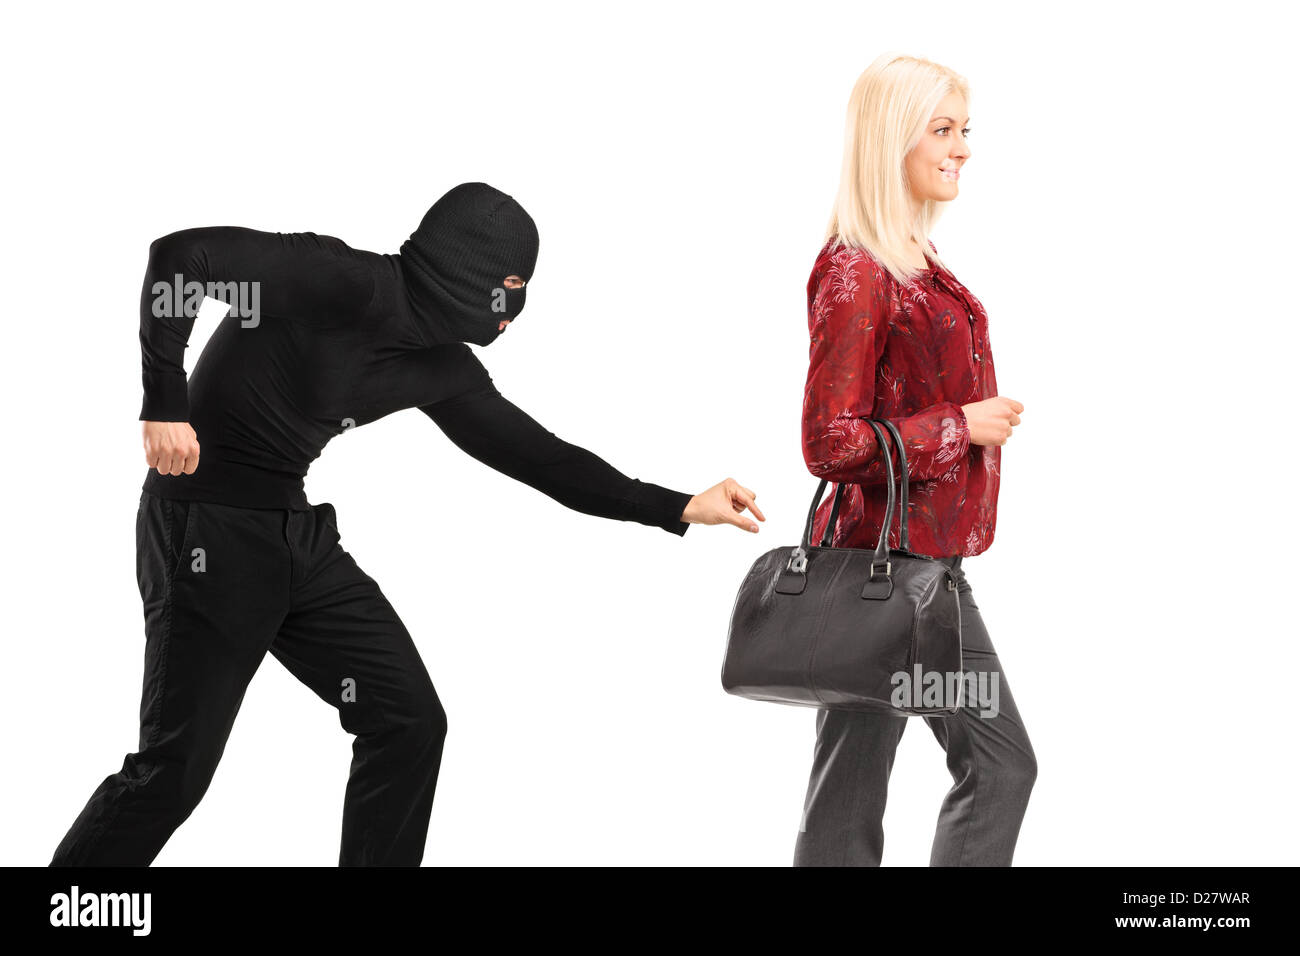 A pickpocket with mask trying to steal a from a woman carrying a purse isolated on white background Stock Photo